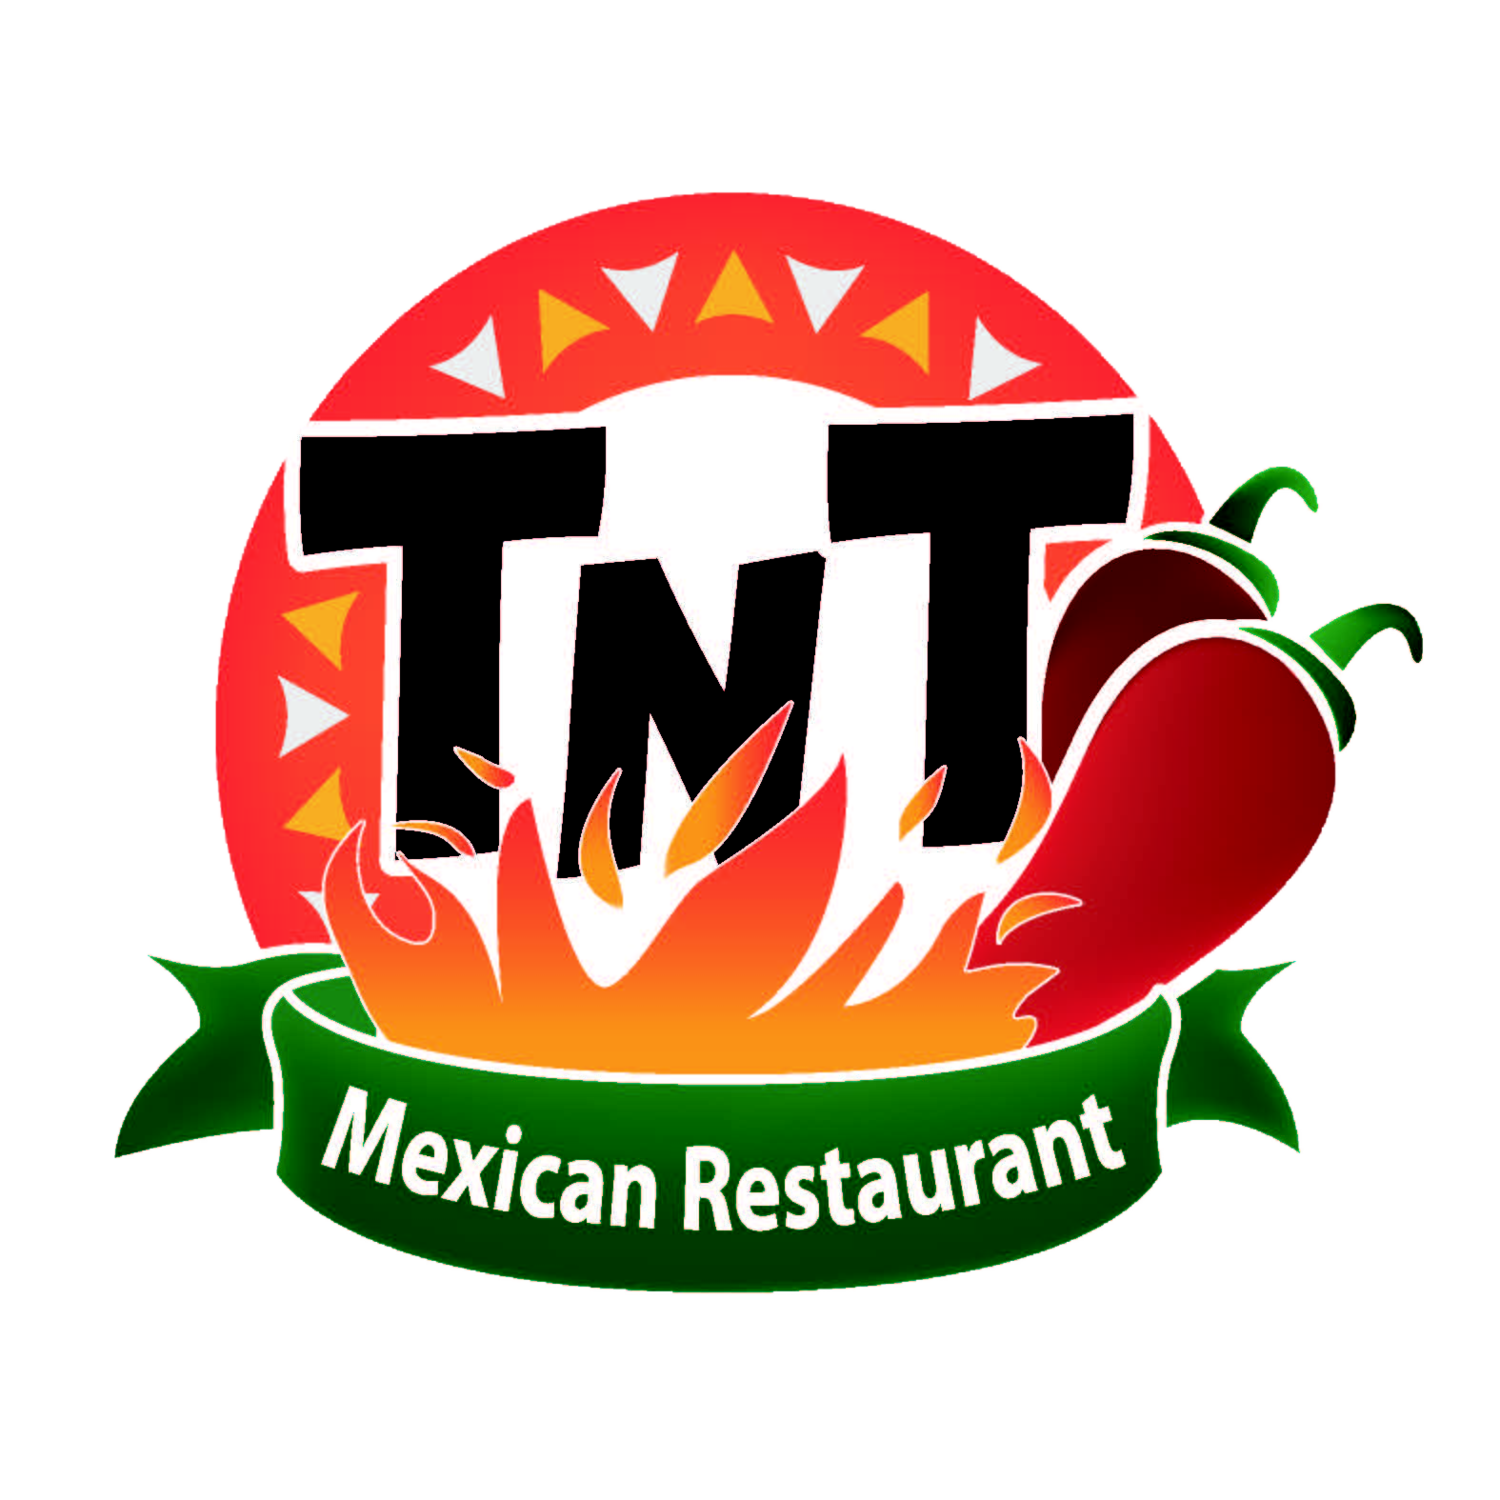 TNT MEXICAN RESTAURANT